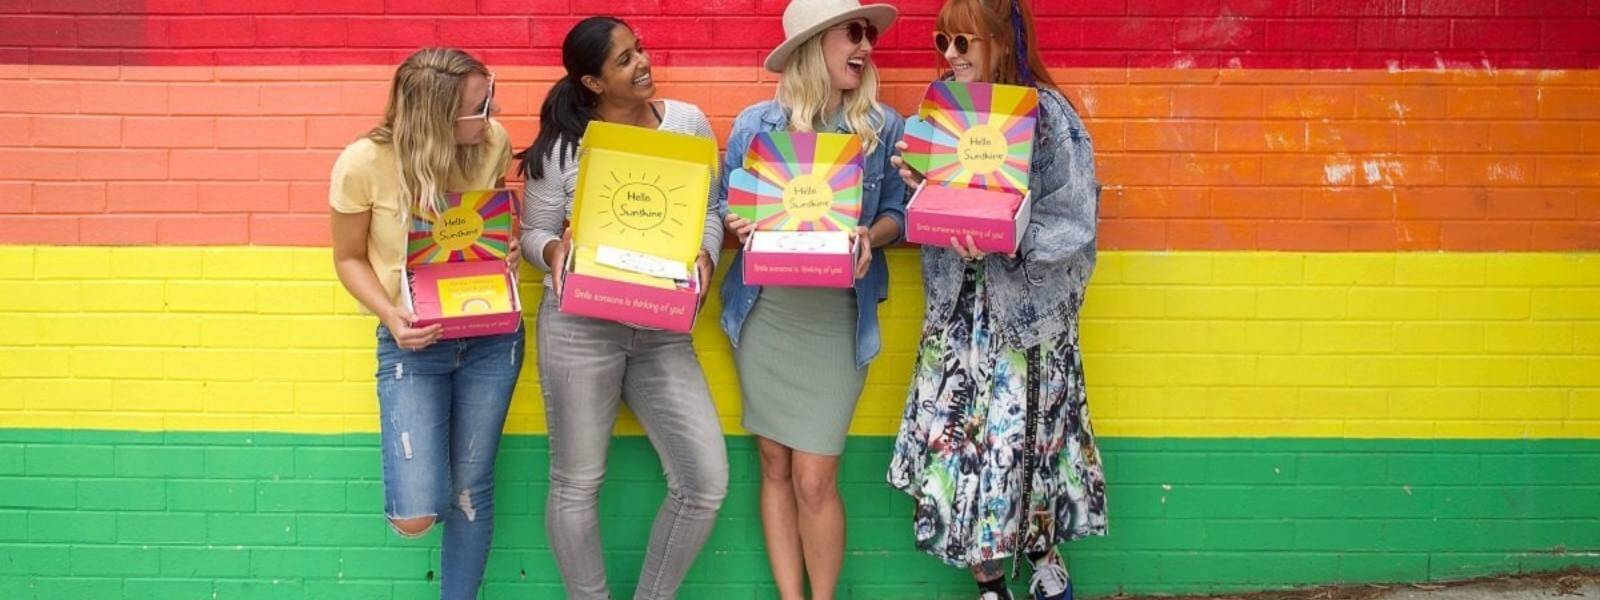 4 Australian girls showing their Gift Boxes